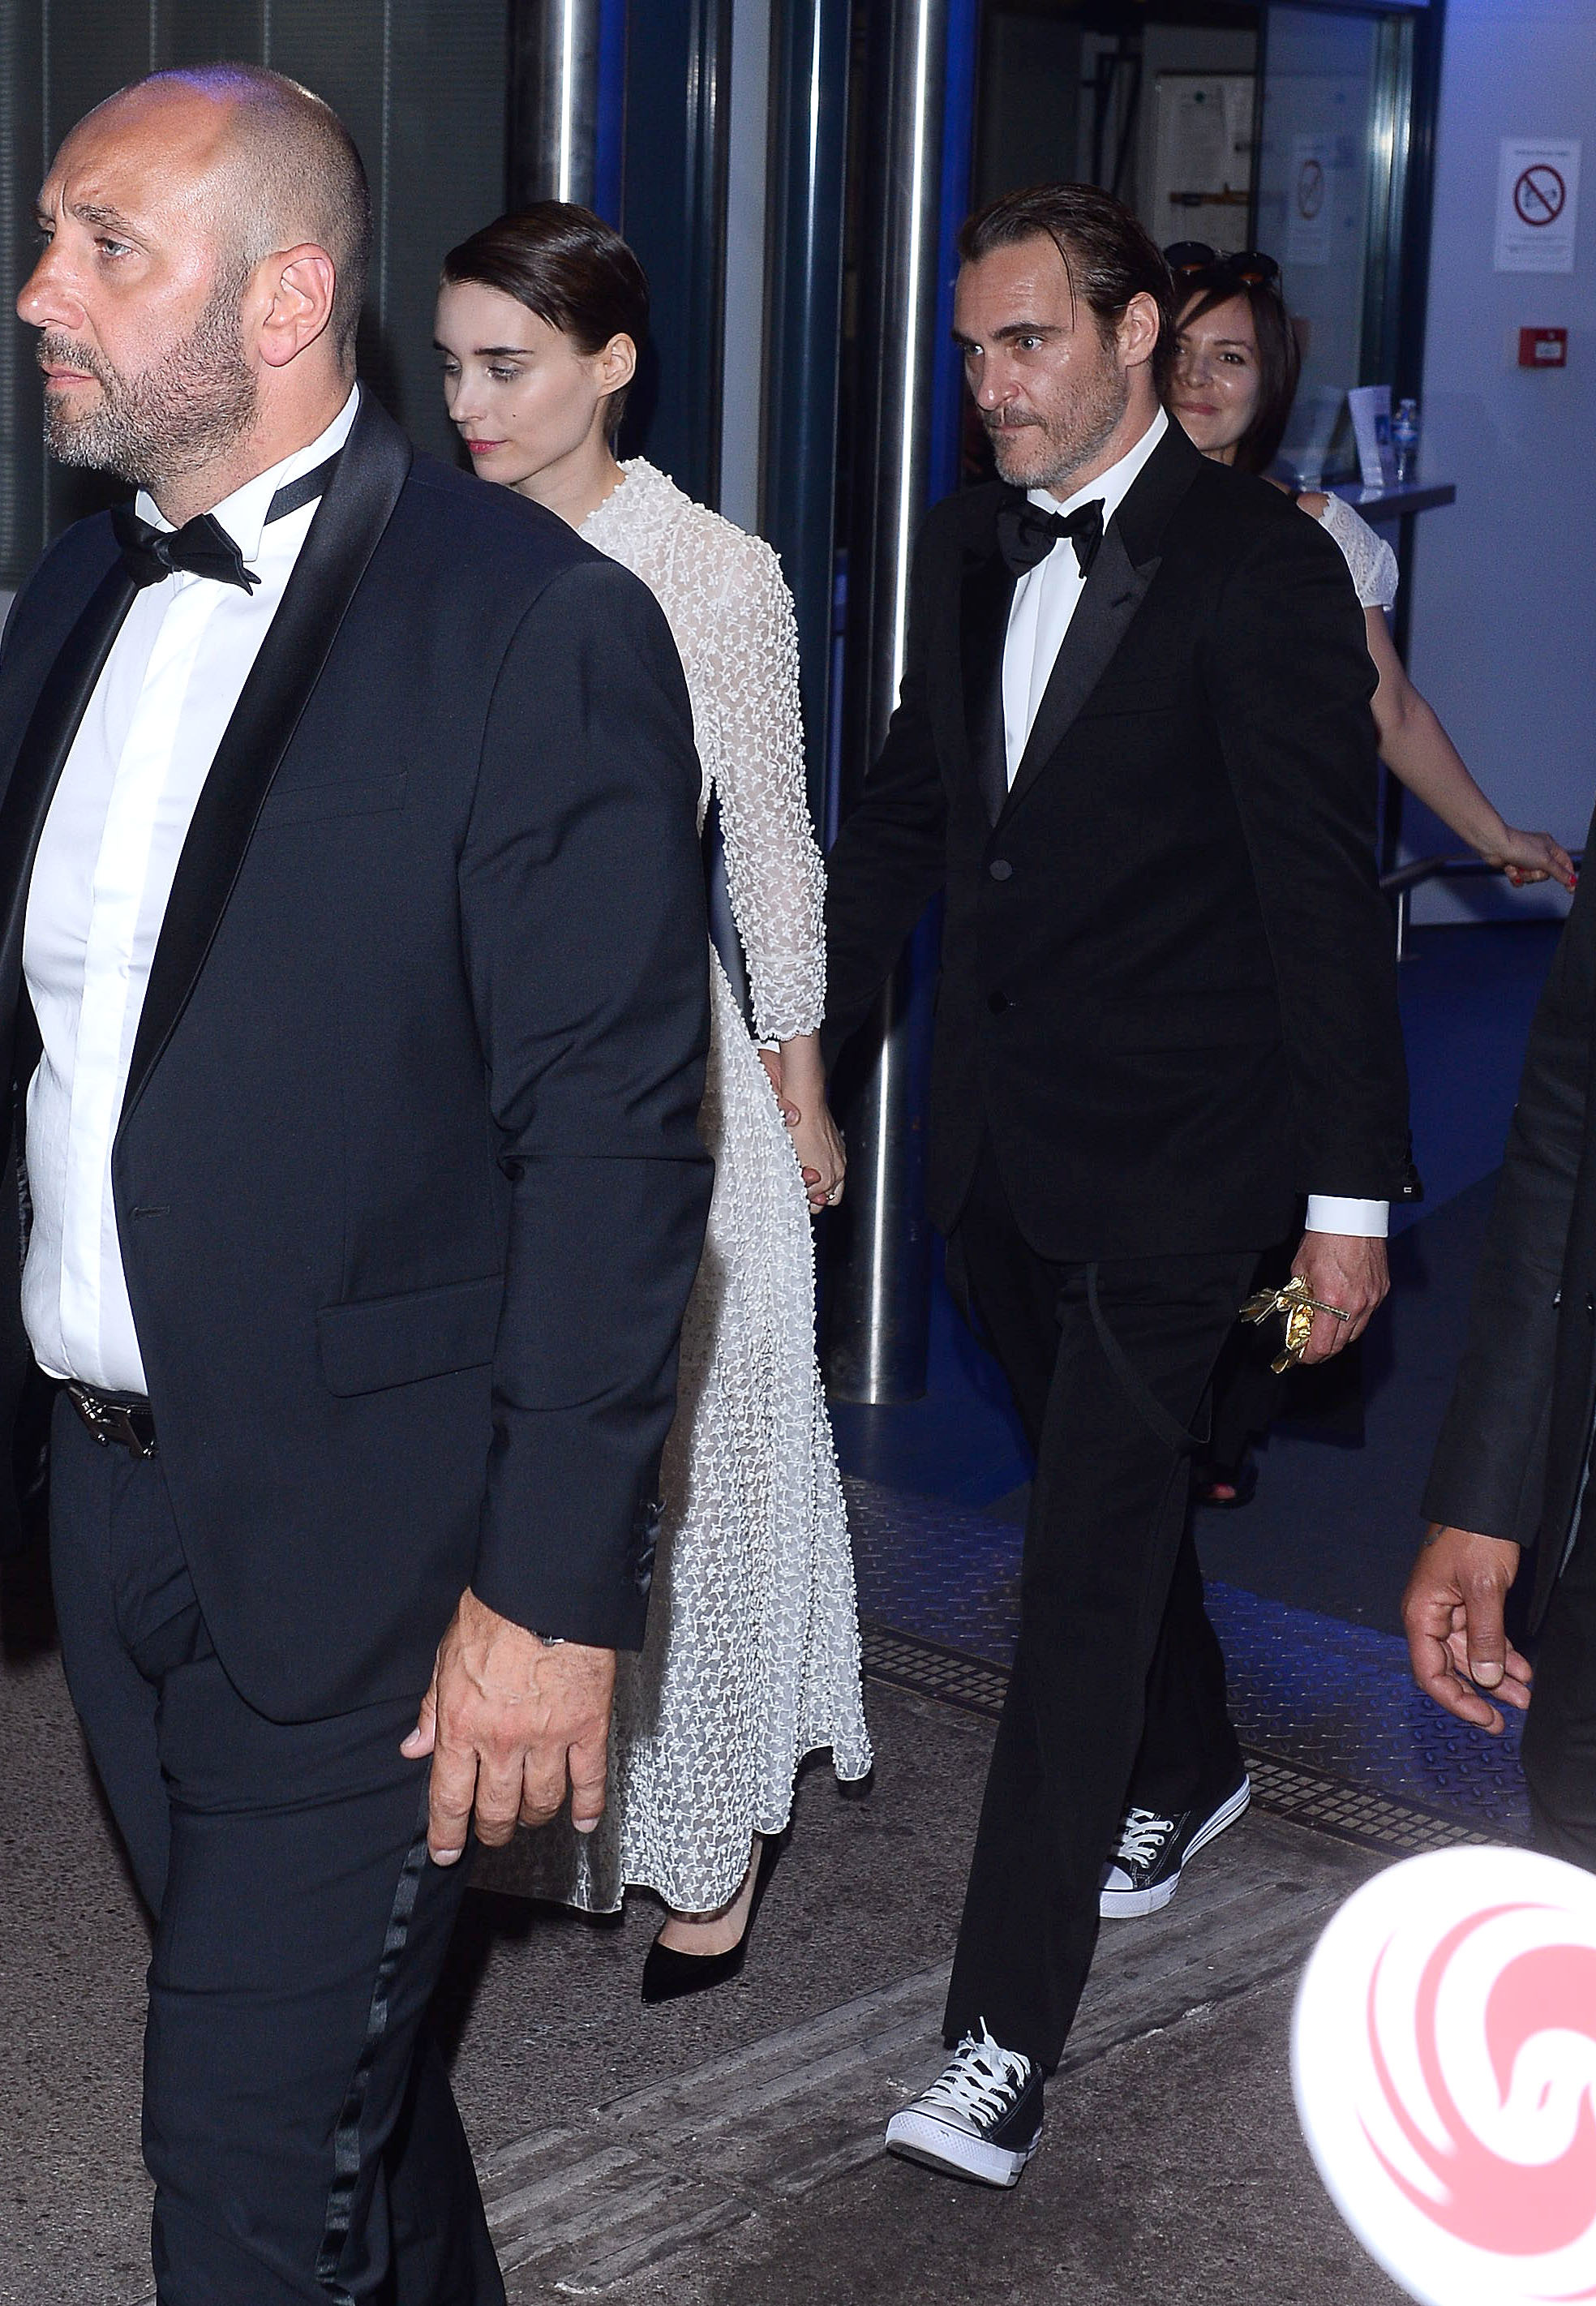 Joaquin Phoenix and Rooney Mara leave the Palais des Festivals et des Congrès on the closing night of the Cannes Film Festival on May 30, 2017.